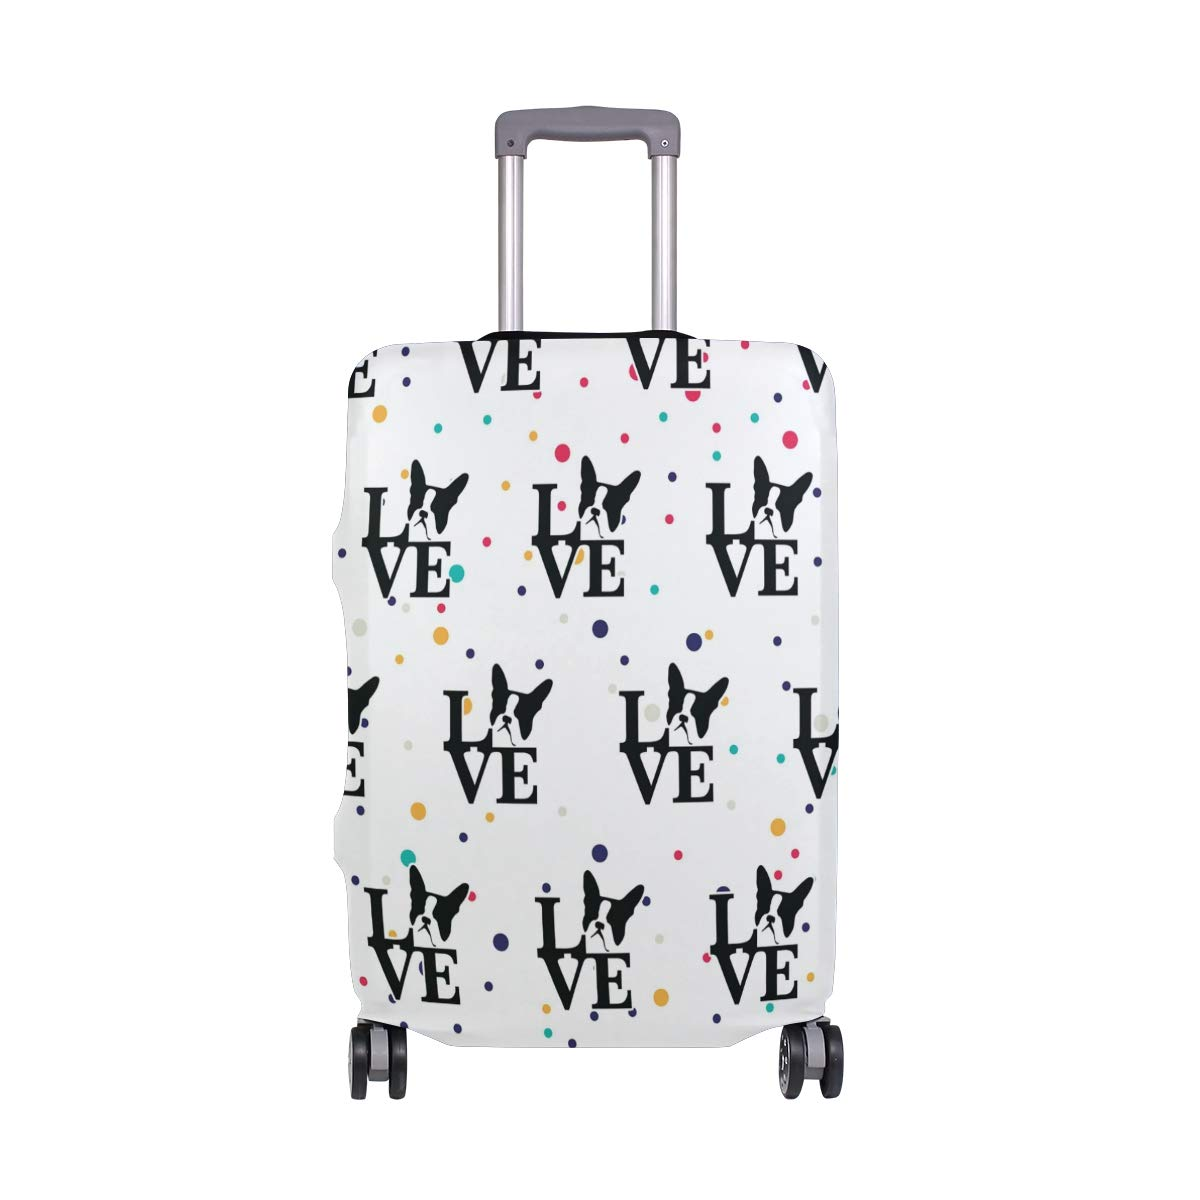 Boston Terrier Love Travel Luggage Cover - Suitcase Protector HLive Spandex Dust Proof Covers with Zipper, Fits 18-32 inch